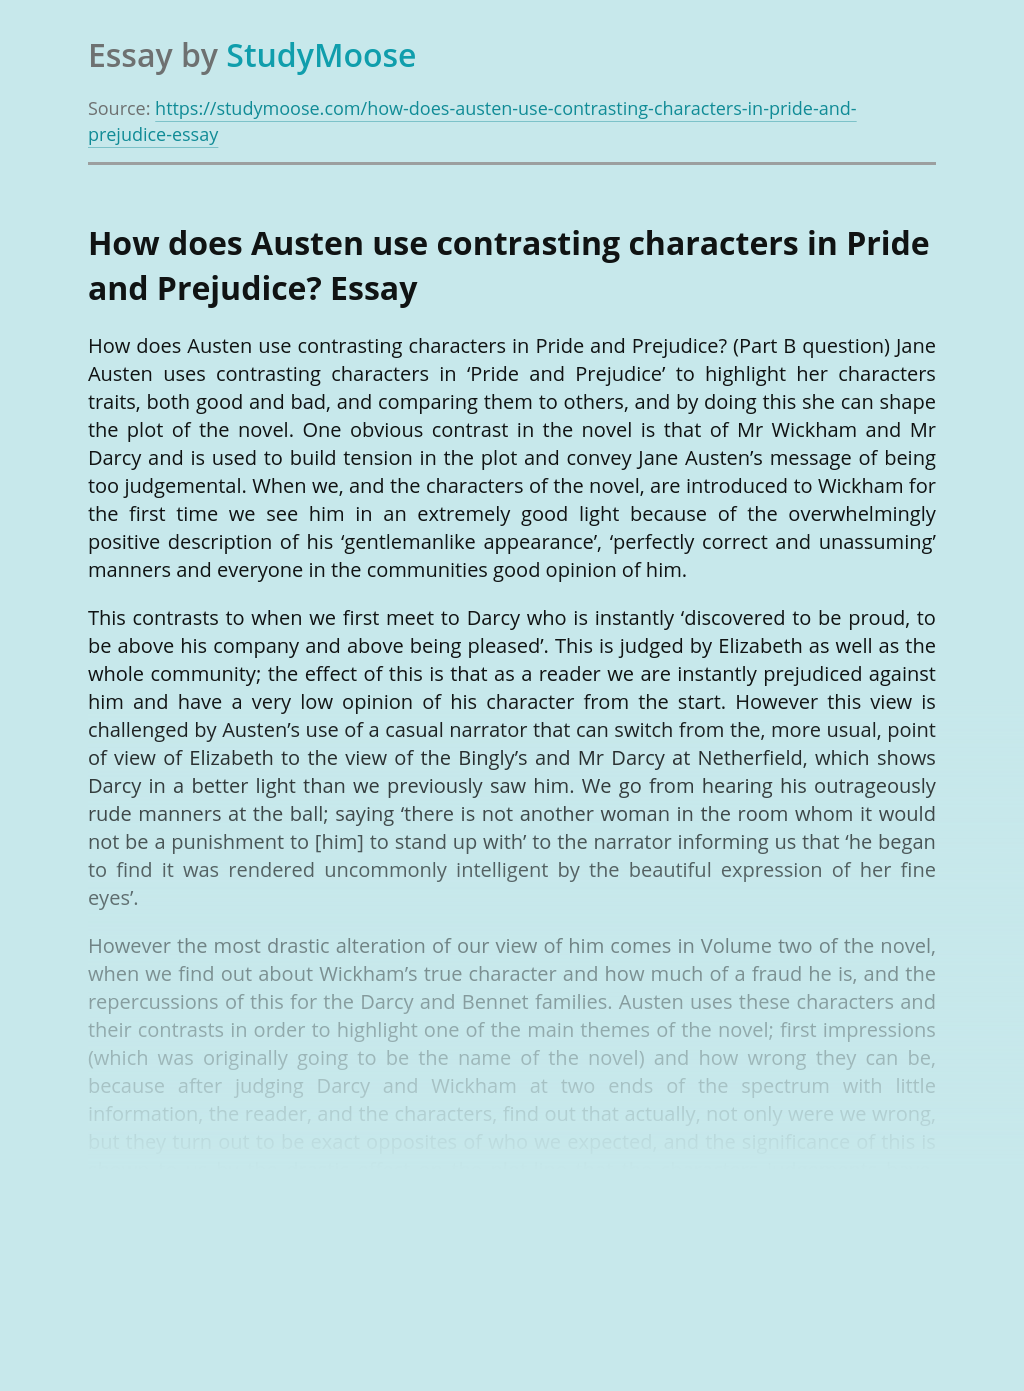 How does Austen use contrasting characters in Pride and Prejudice?